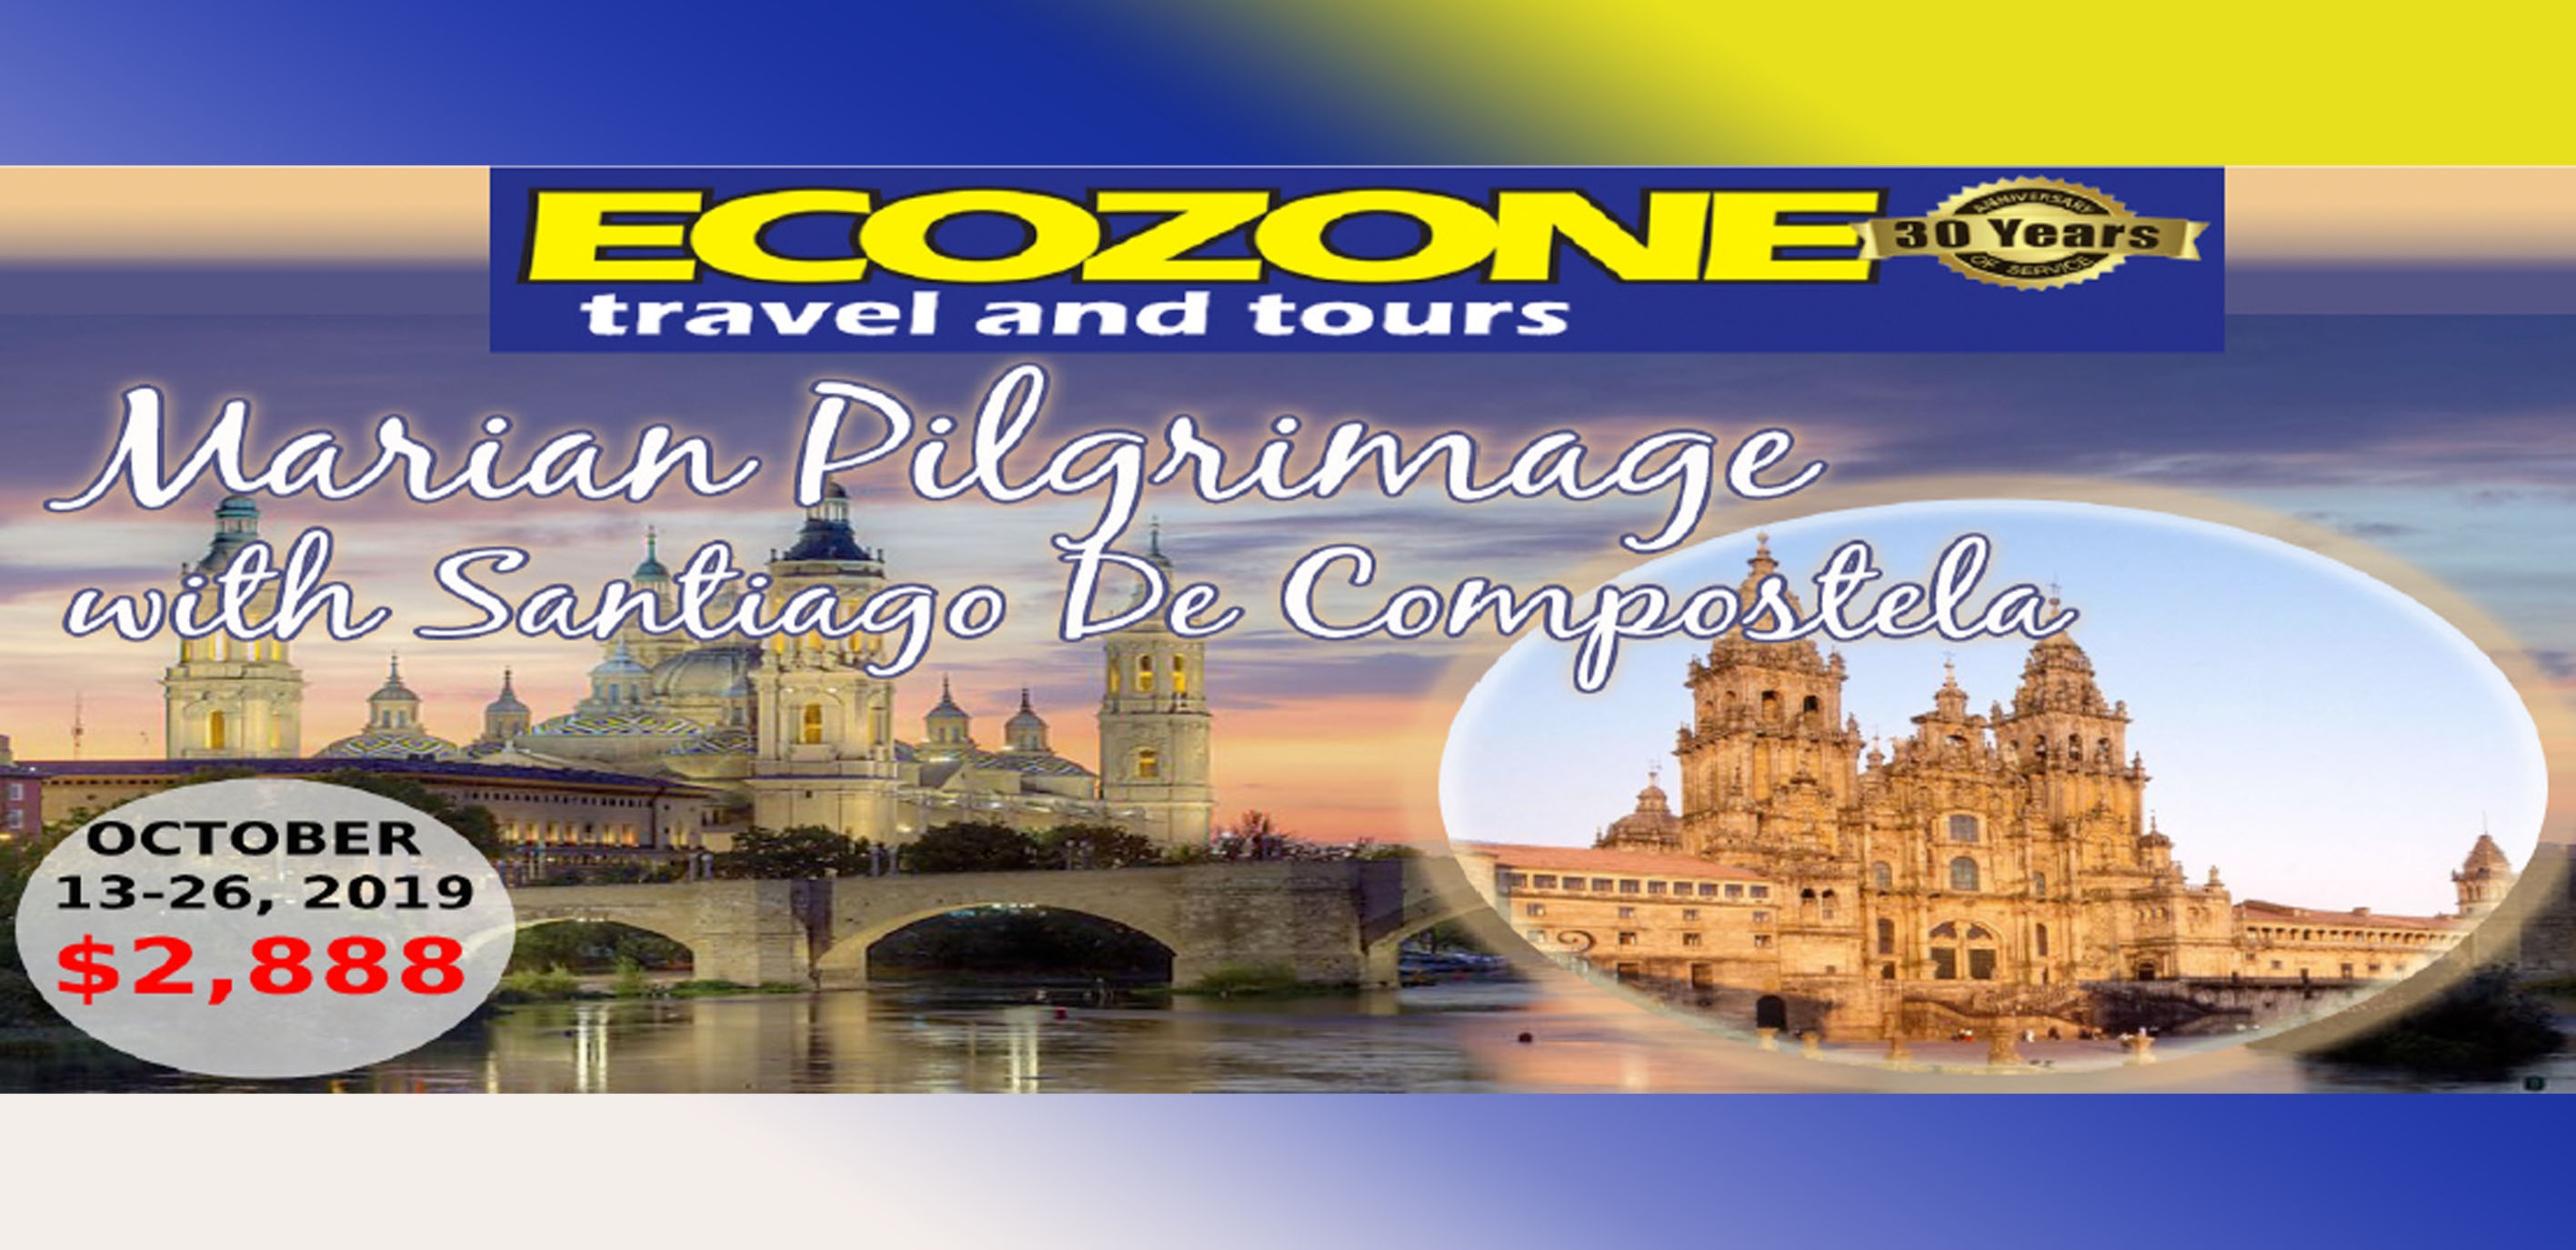 MARIAN PILGRIMAGE Featured Images 2019 May Packages